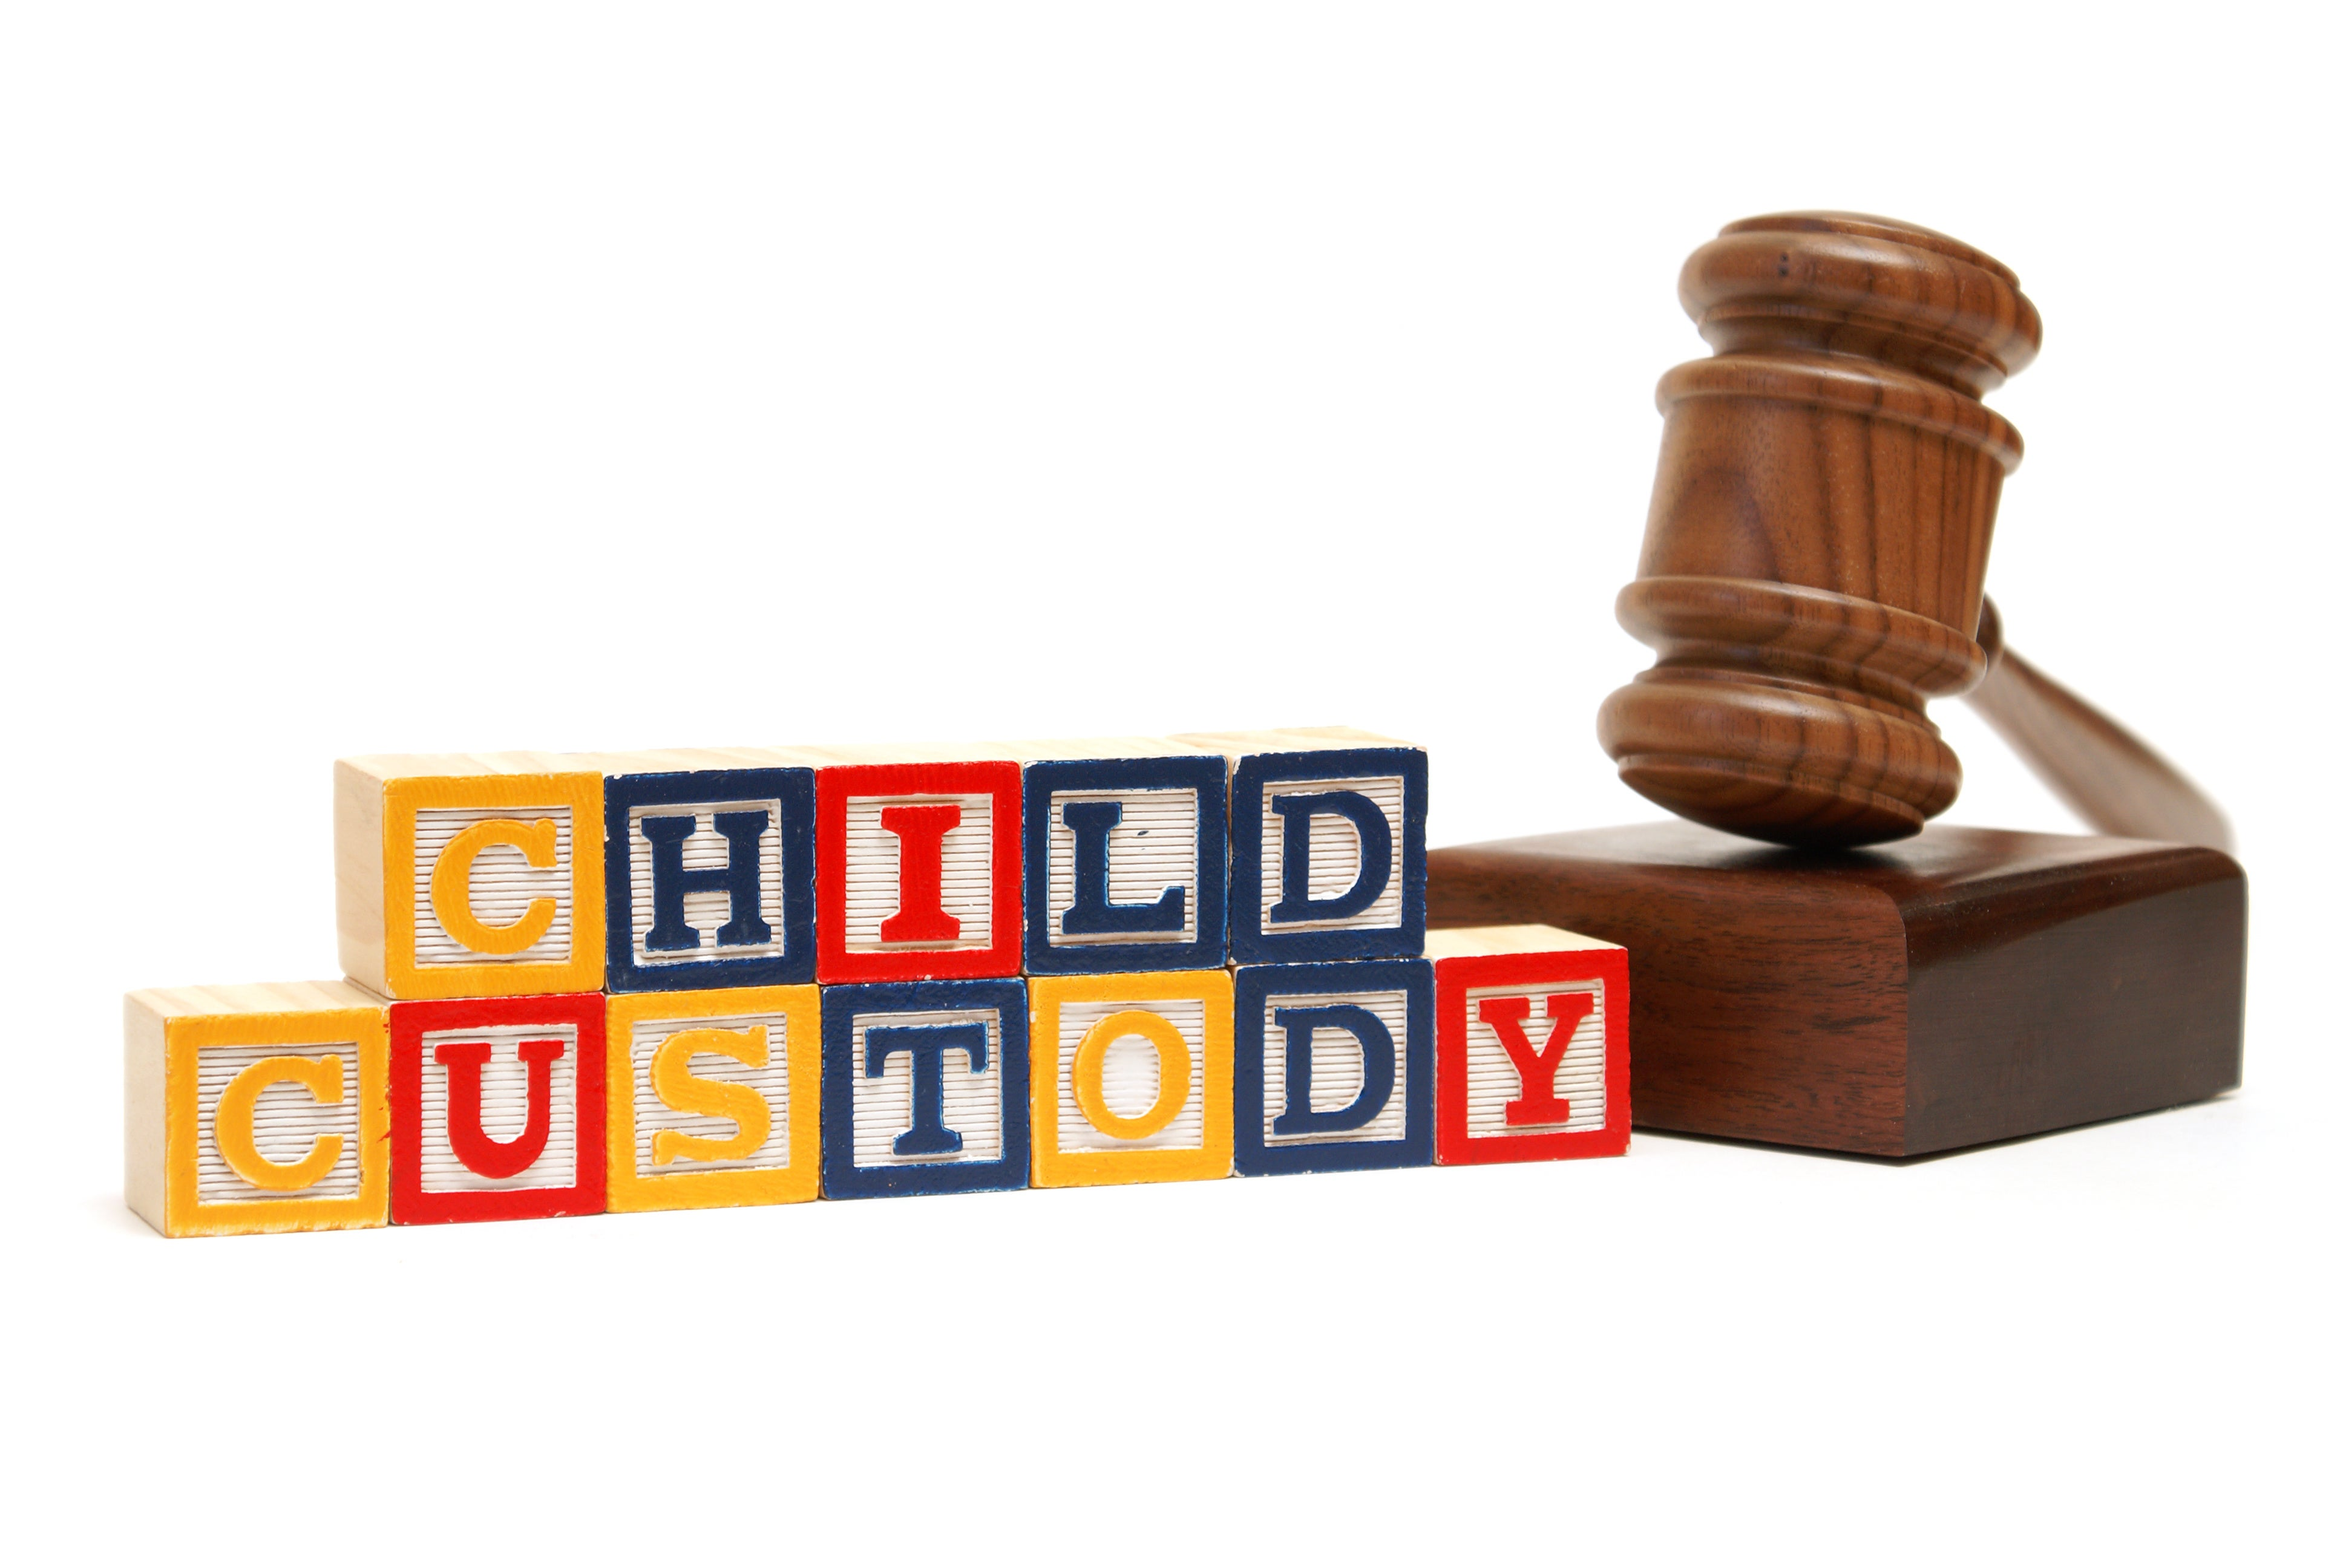 A group of children blocks spells out child custody next to a judges gavel.